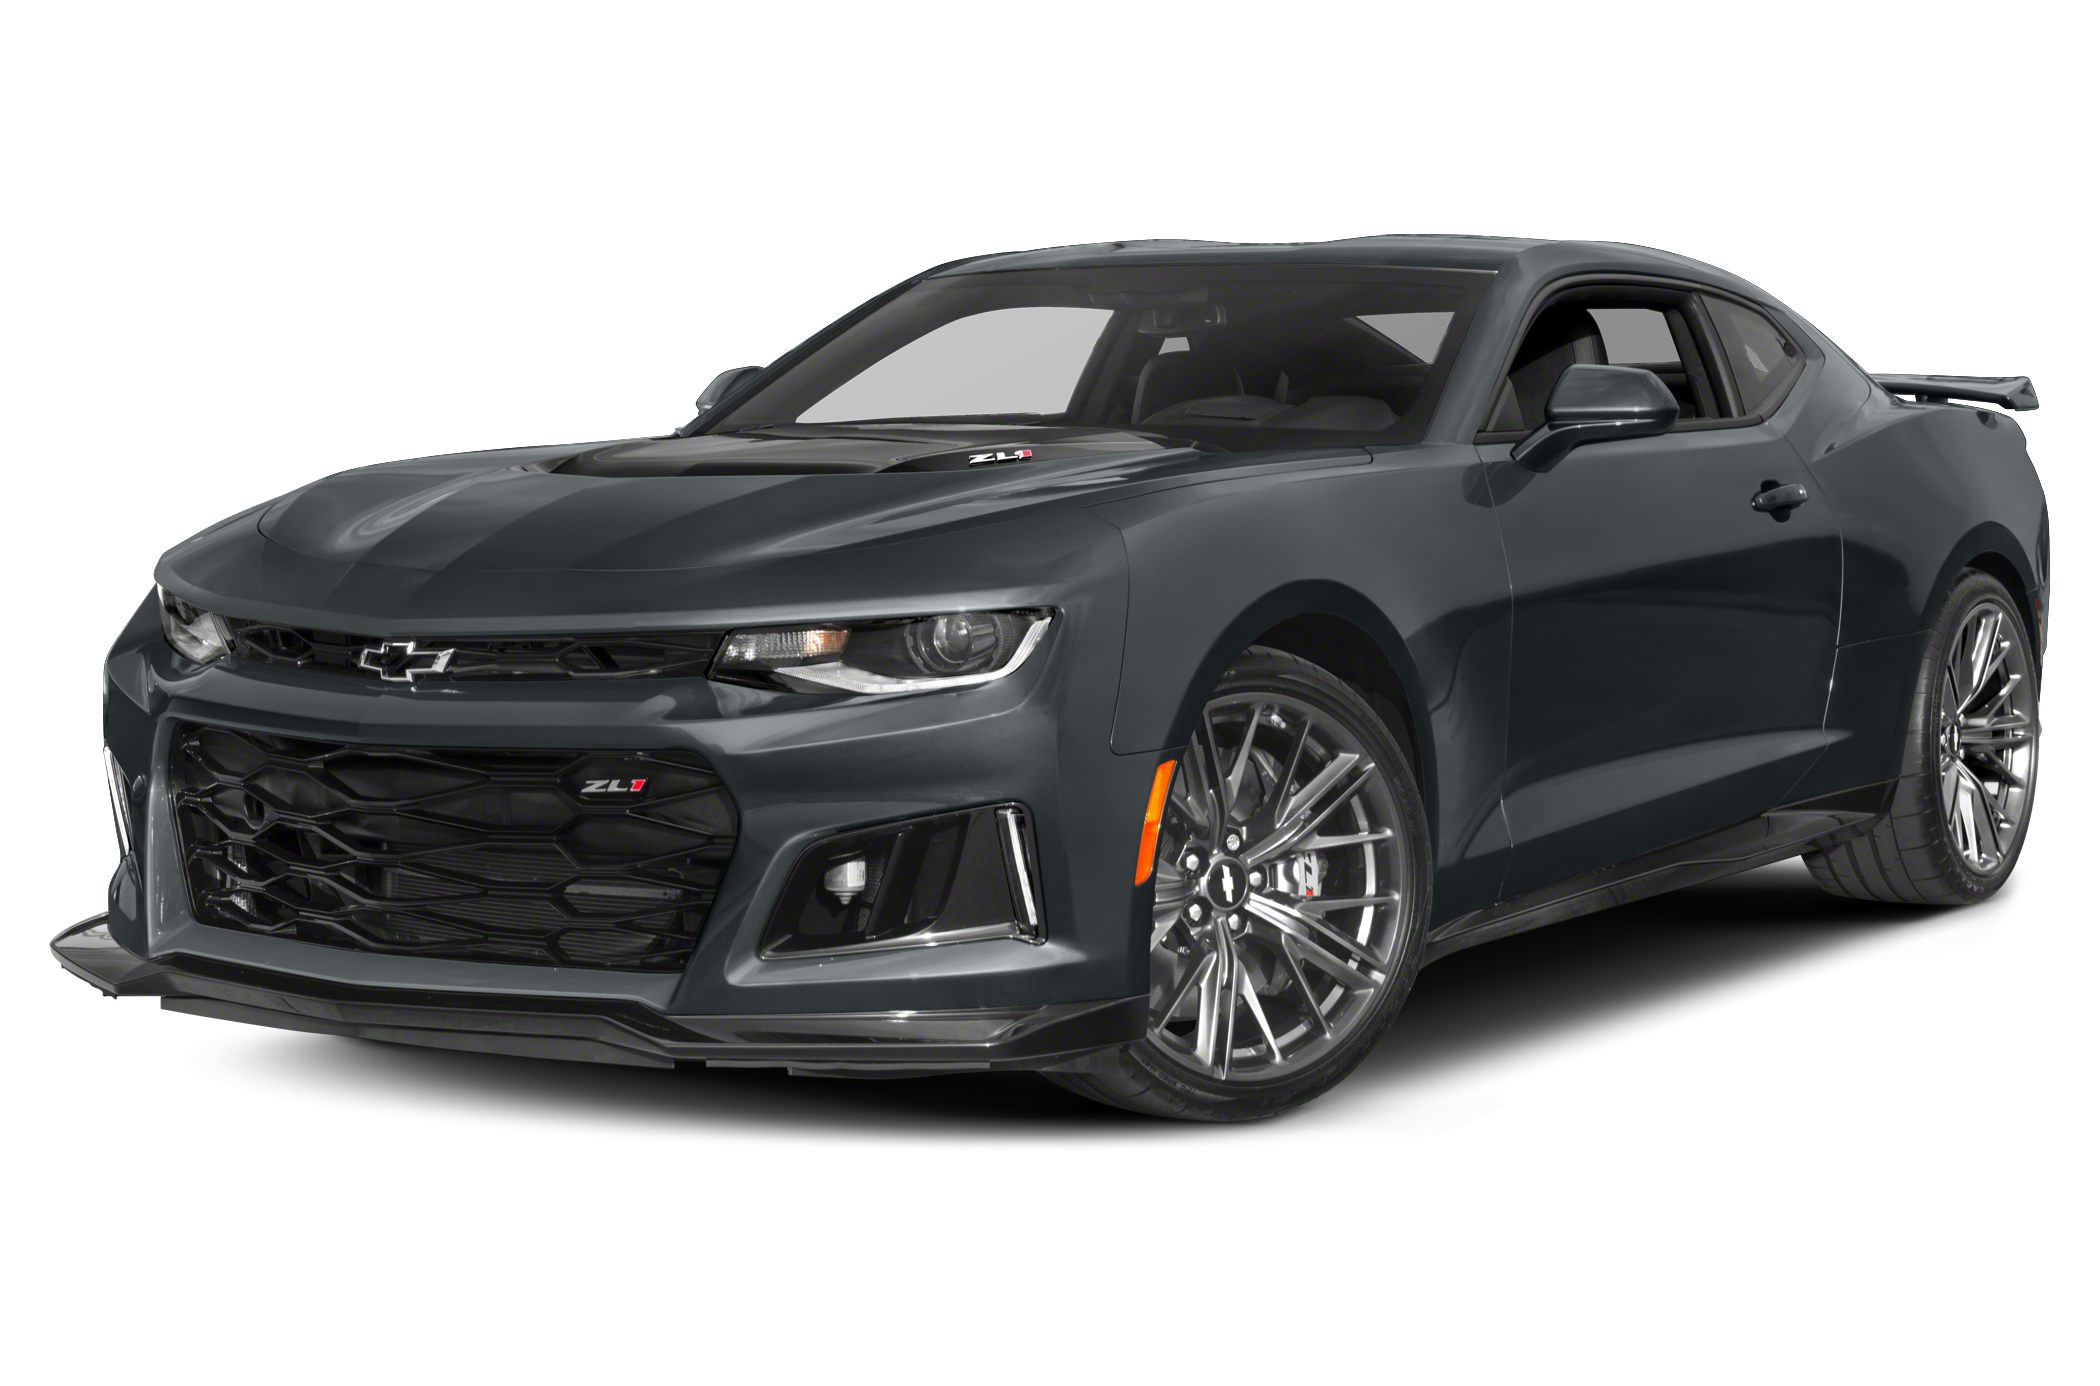 Zl1 2dr Coupe 2018 Chevrolet Camaro Photos